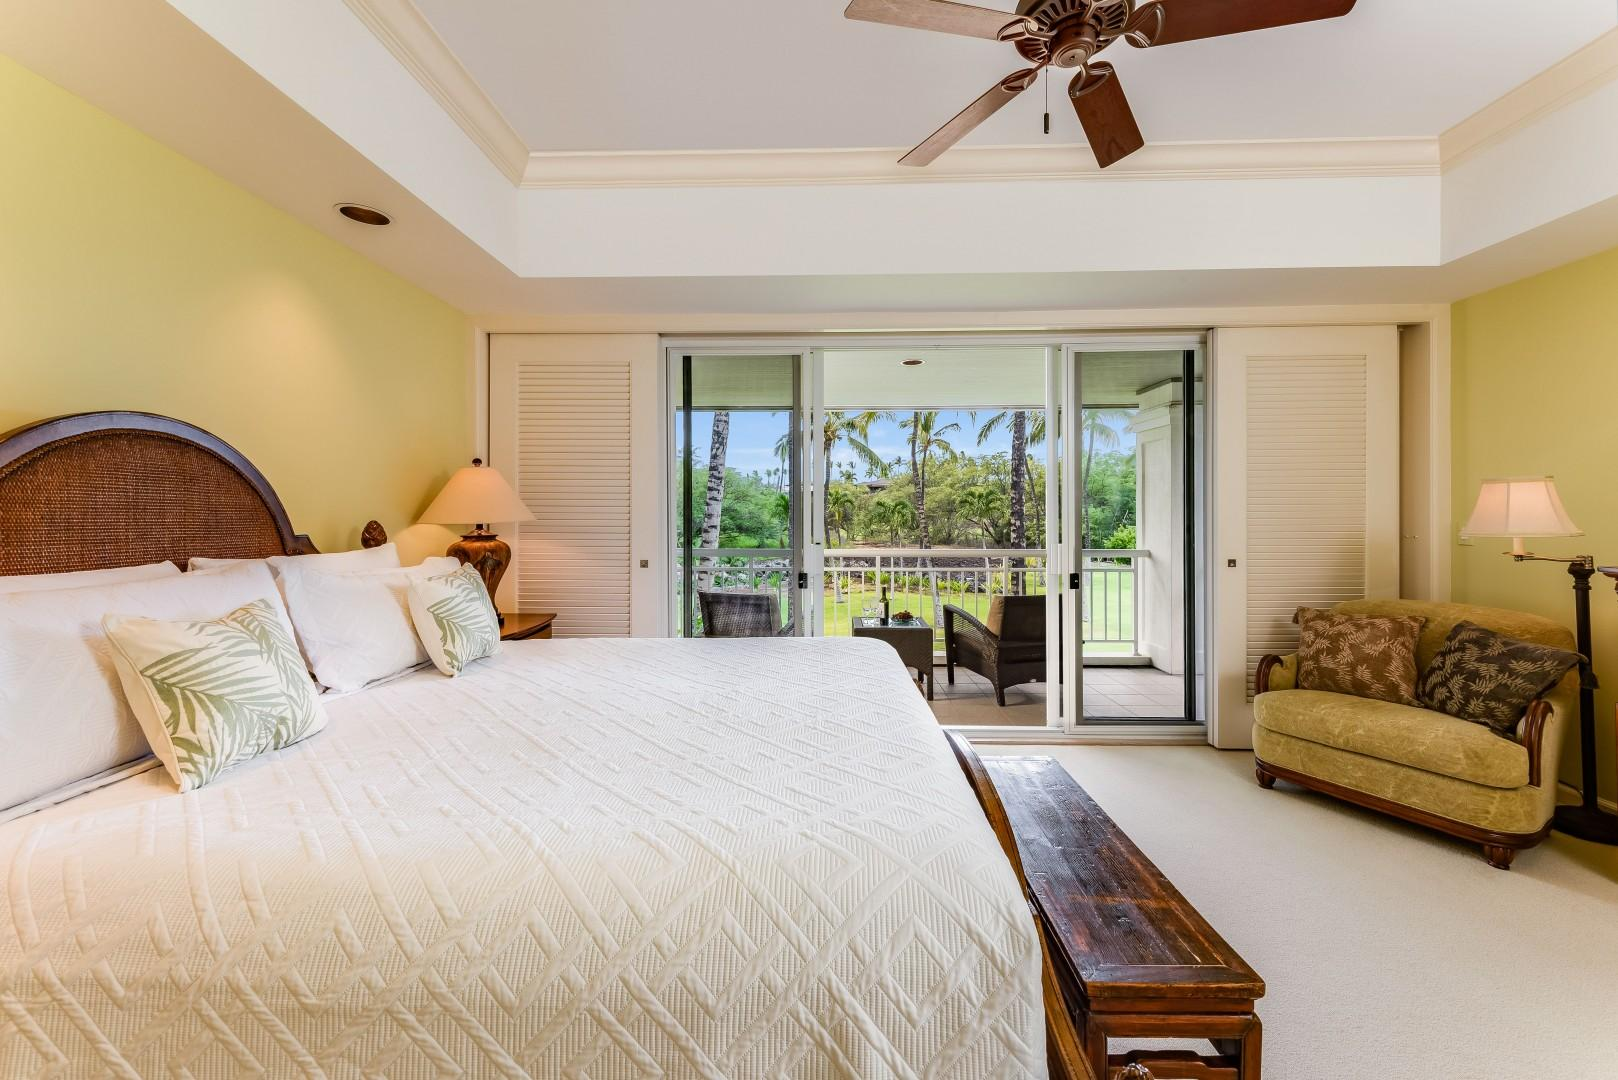 Primary Bedroom w/ King Size Bed & Private Lanai Overlooking Beautiful Gardens